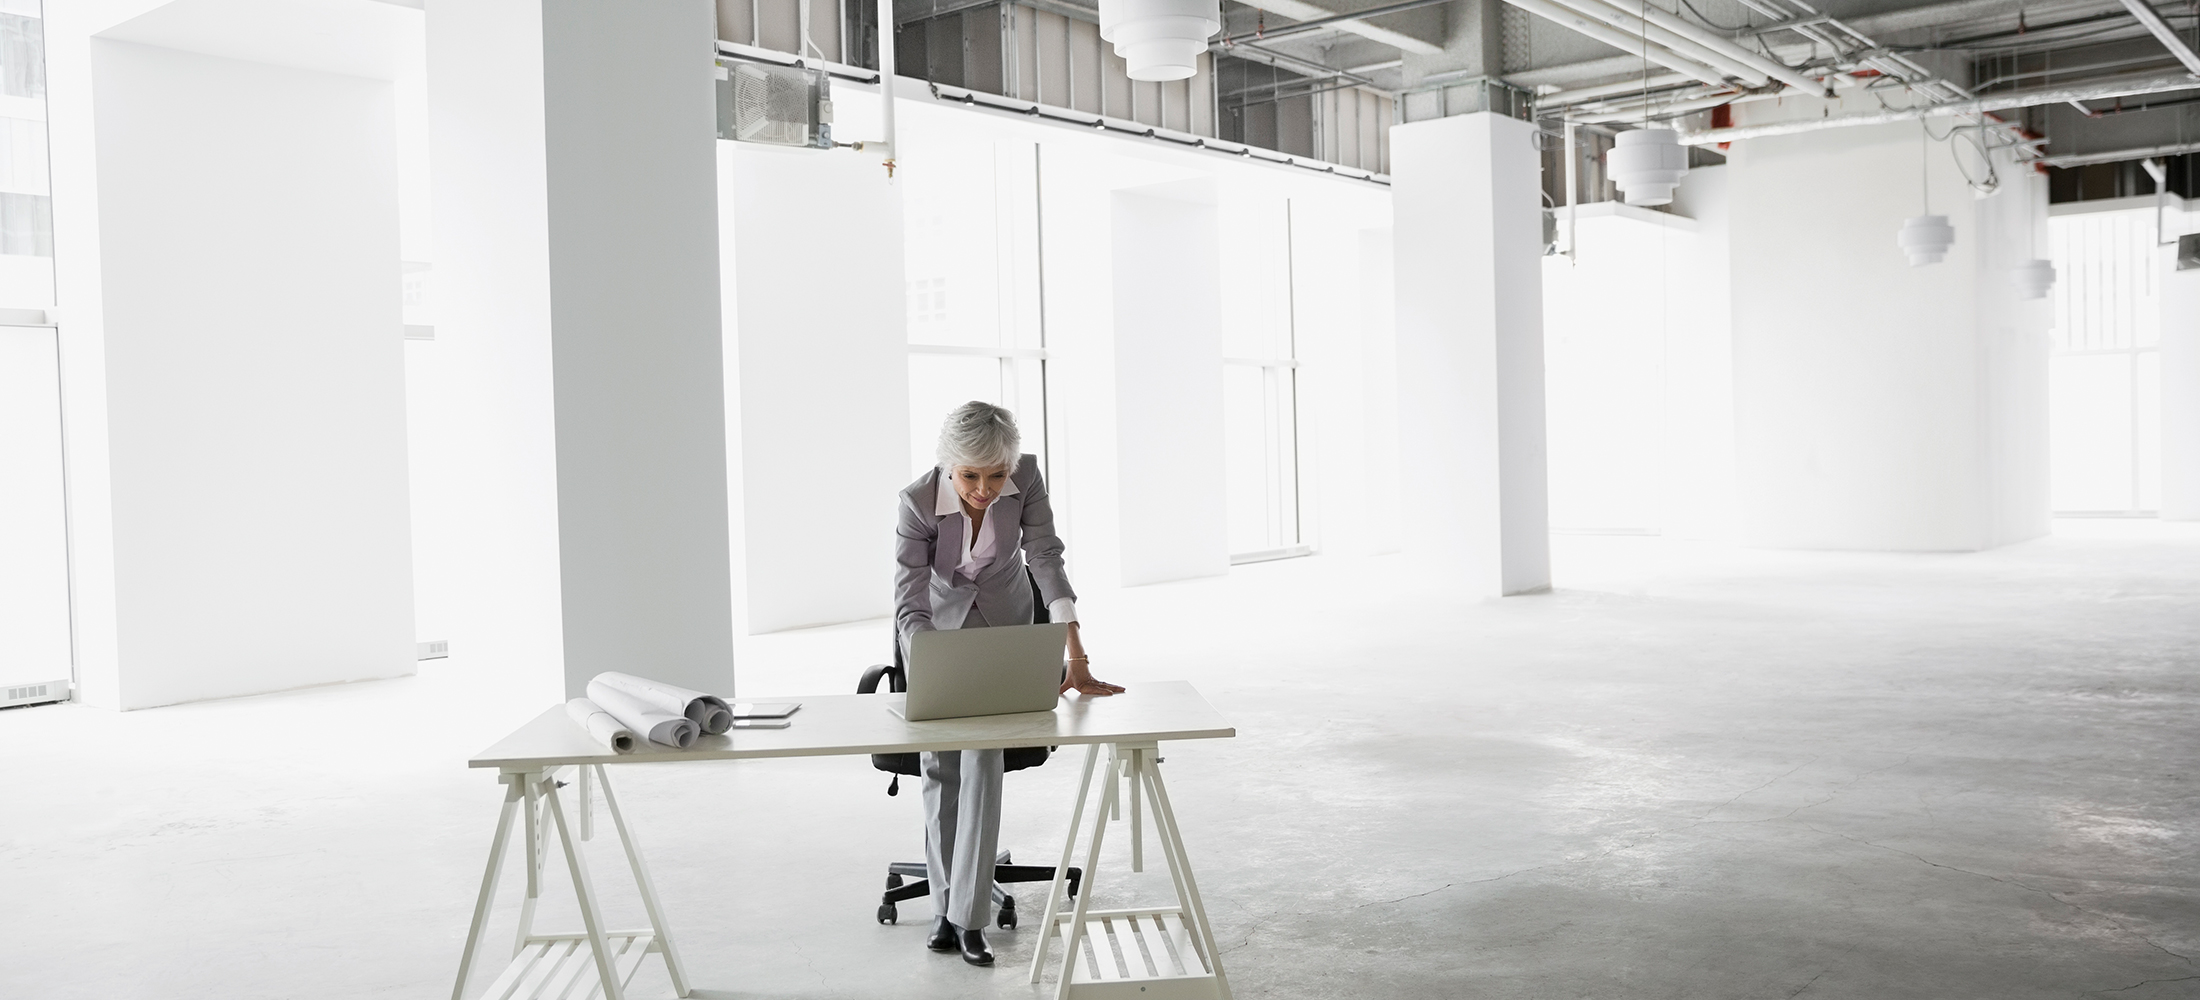 Architect working at laptop in empty office